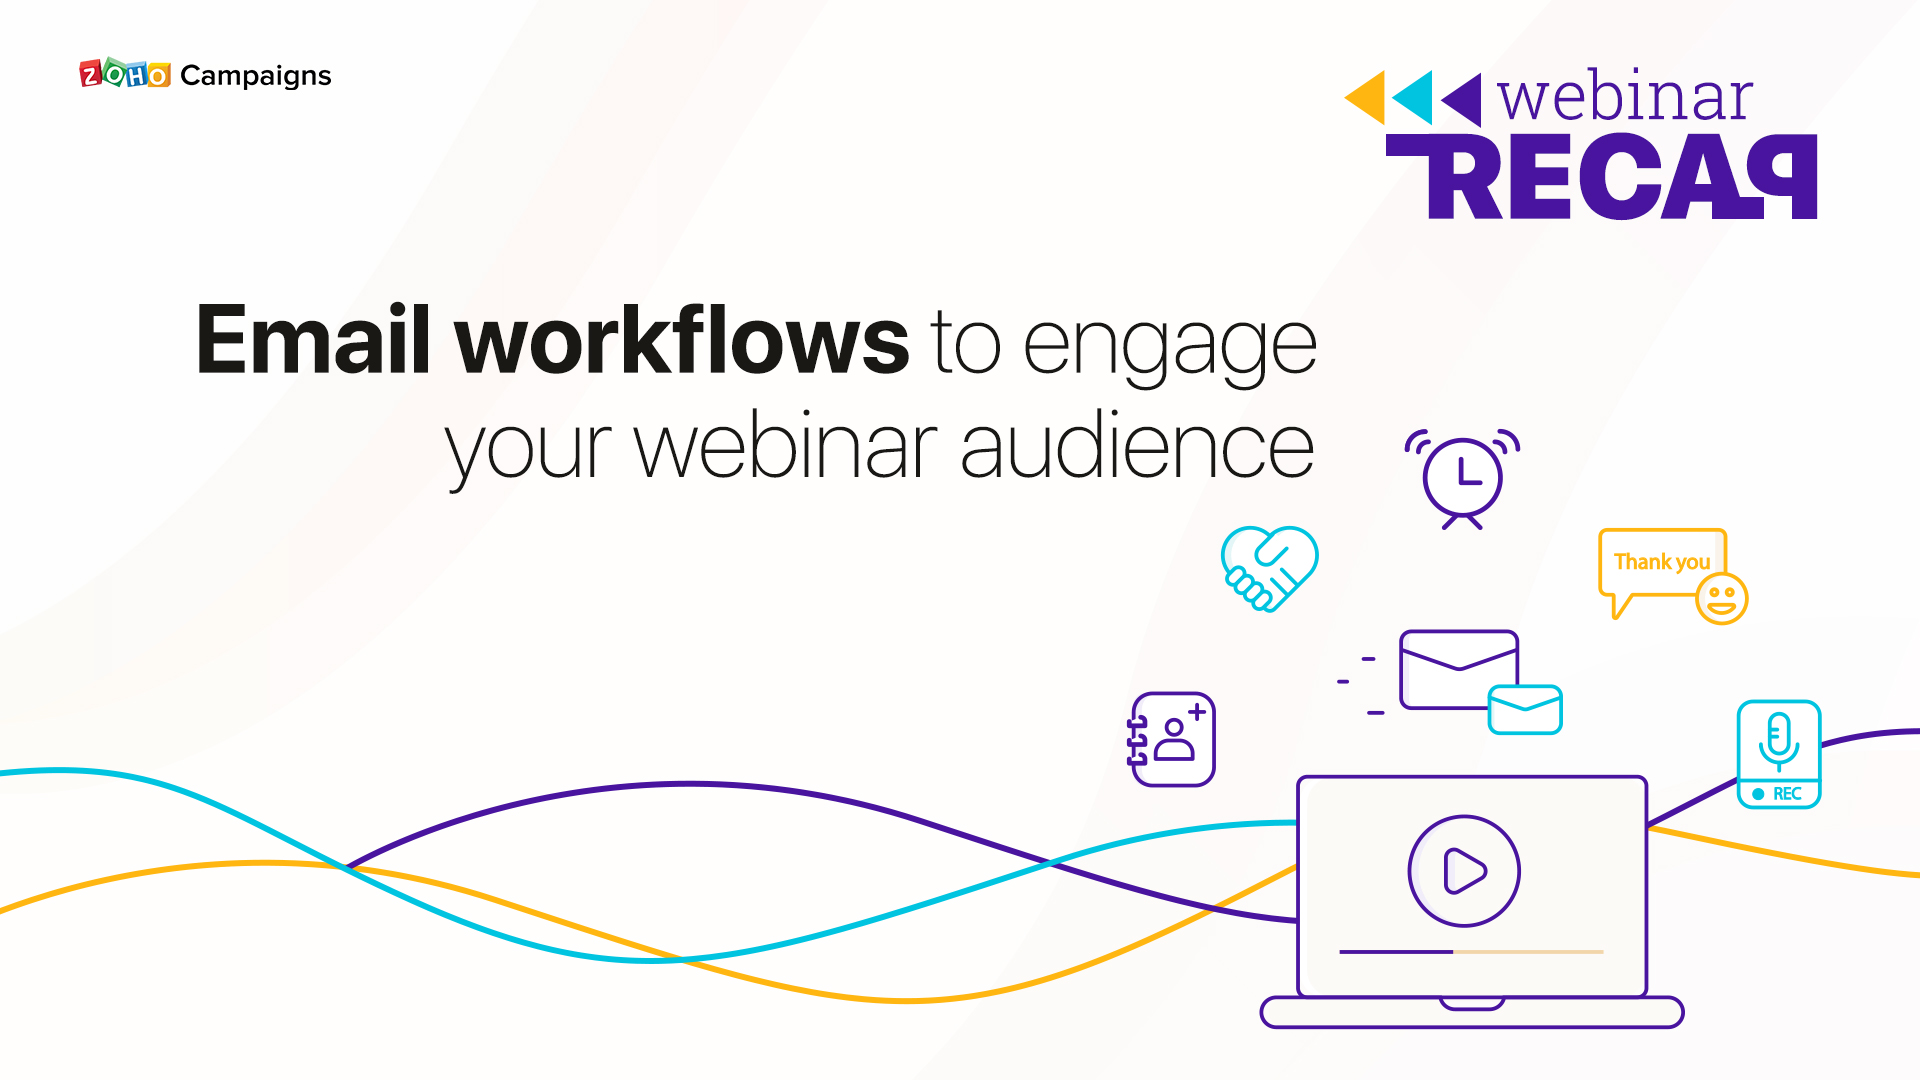 Webinar Recap: Email workflows to engage your webinar audience